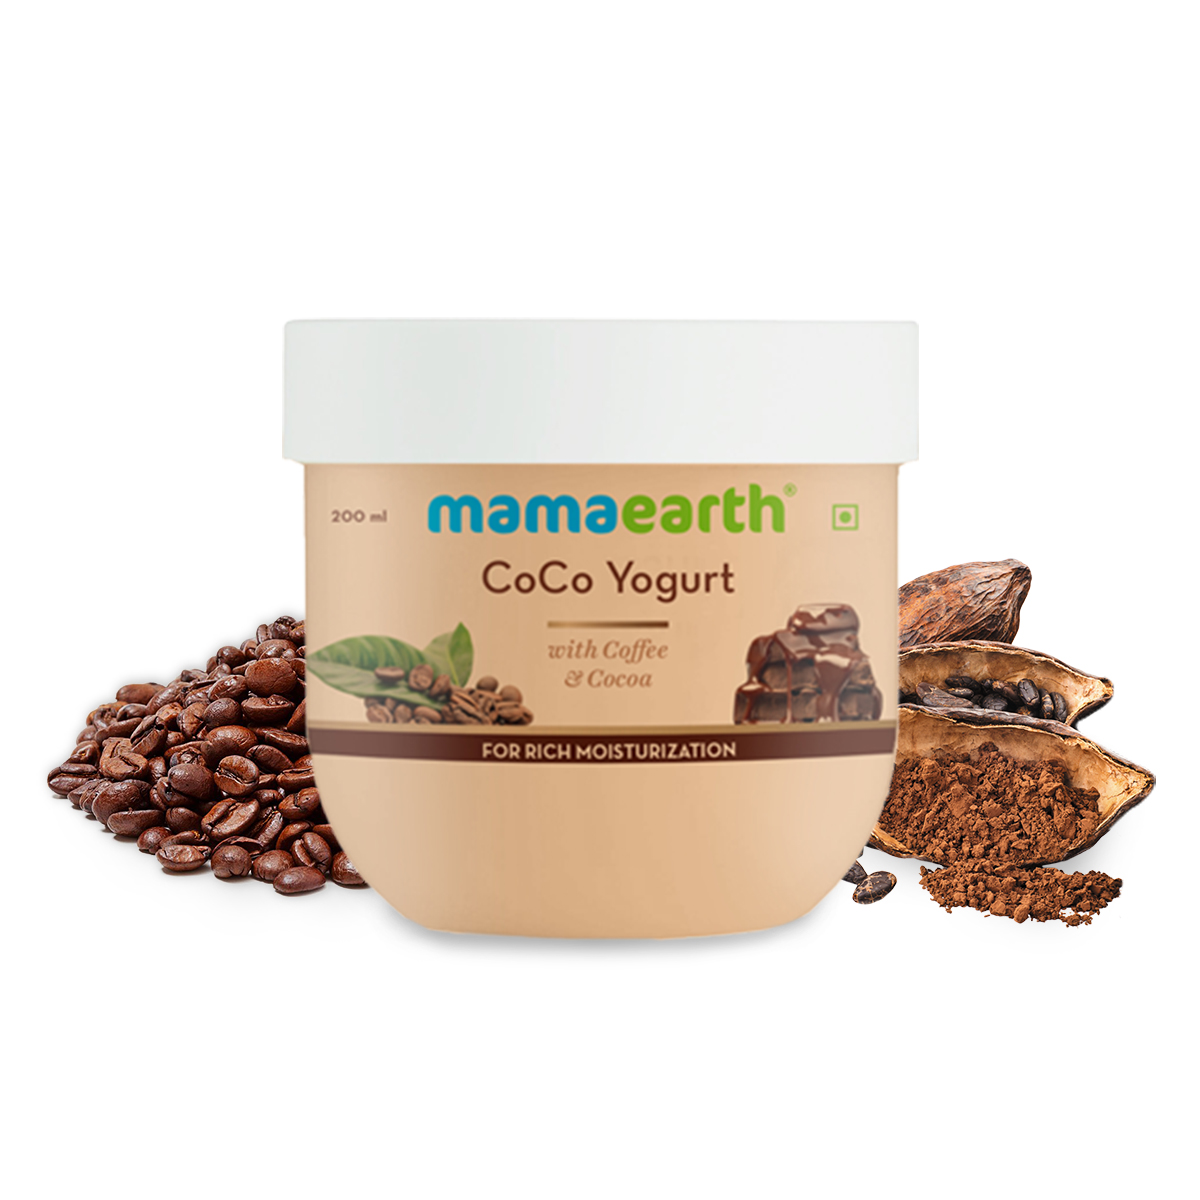 Mamaearth Coco Body Yogurt Lotion For All Skin Types Skin With Coffee And Cocoa